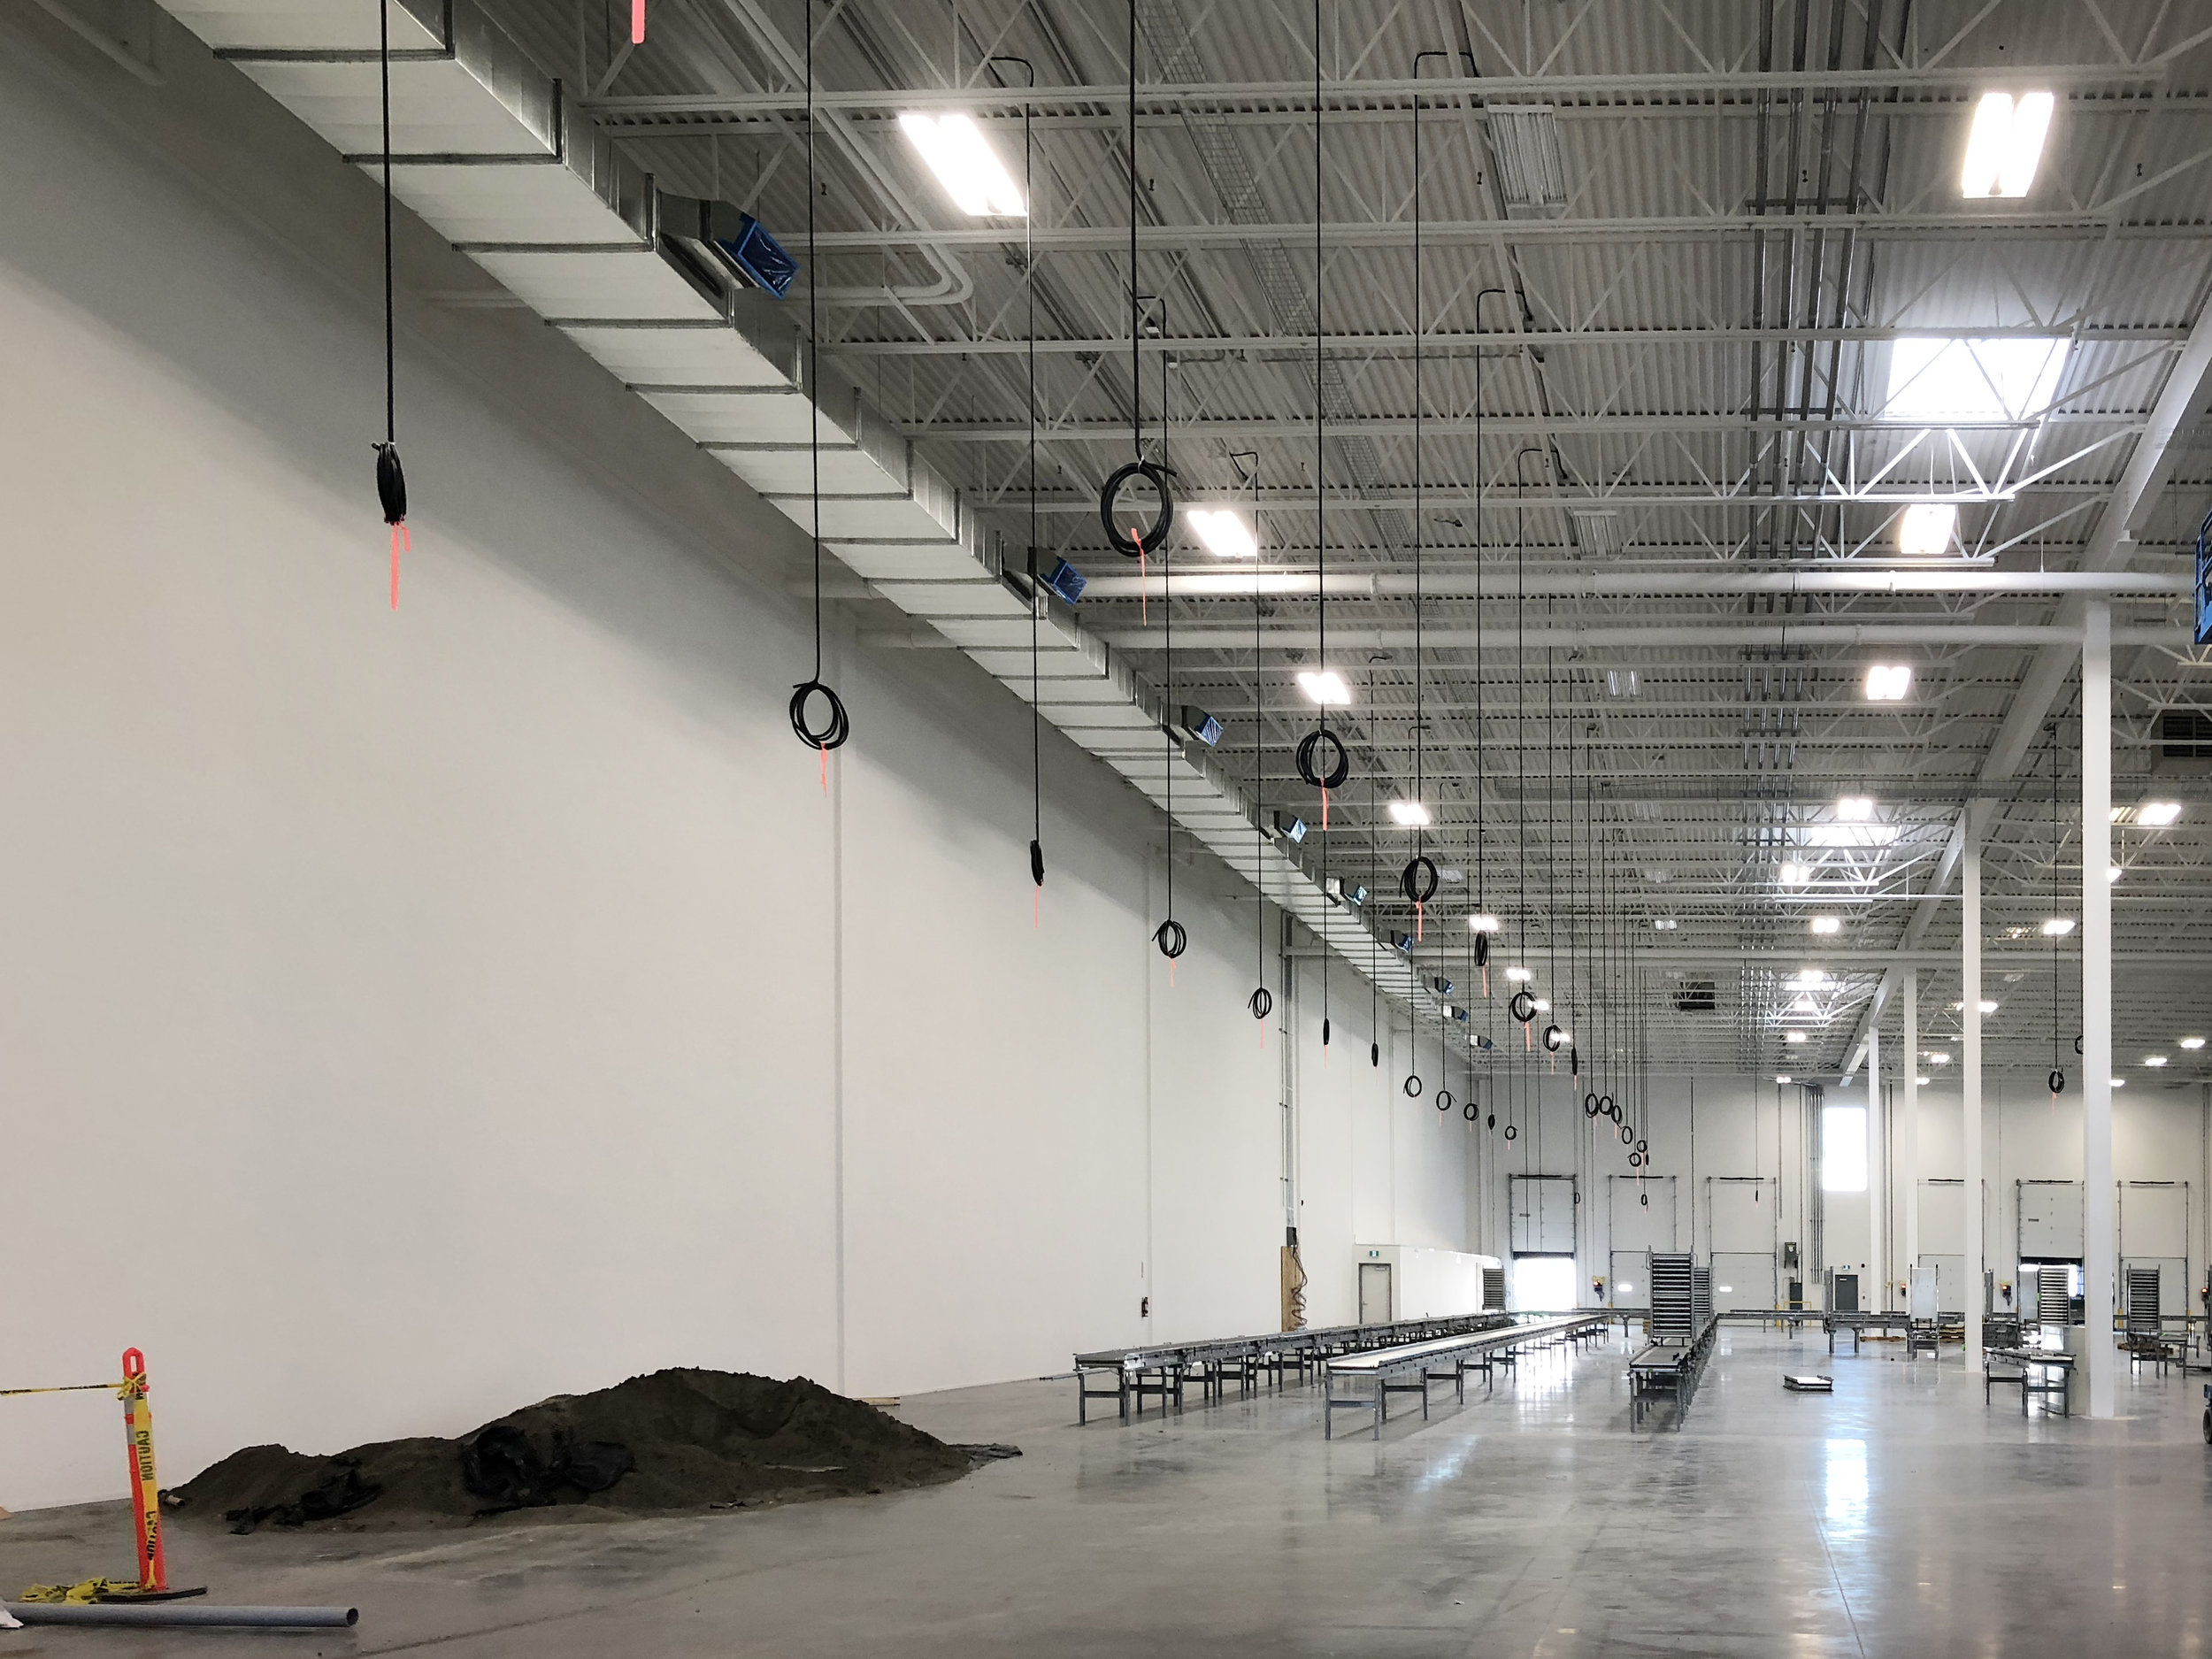 In a sorting area that will have many workstations sitting alongside conveyor lines, power cables dangle from the ceiling waiting to be brought down to the desks.